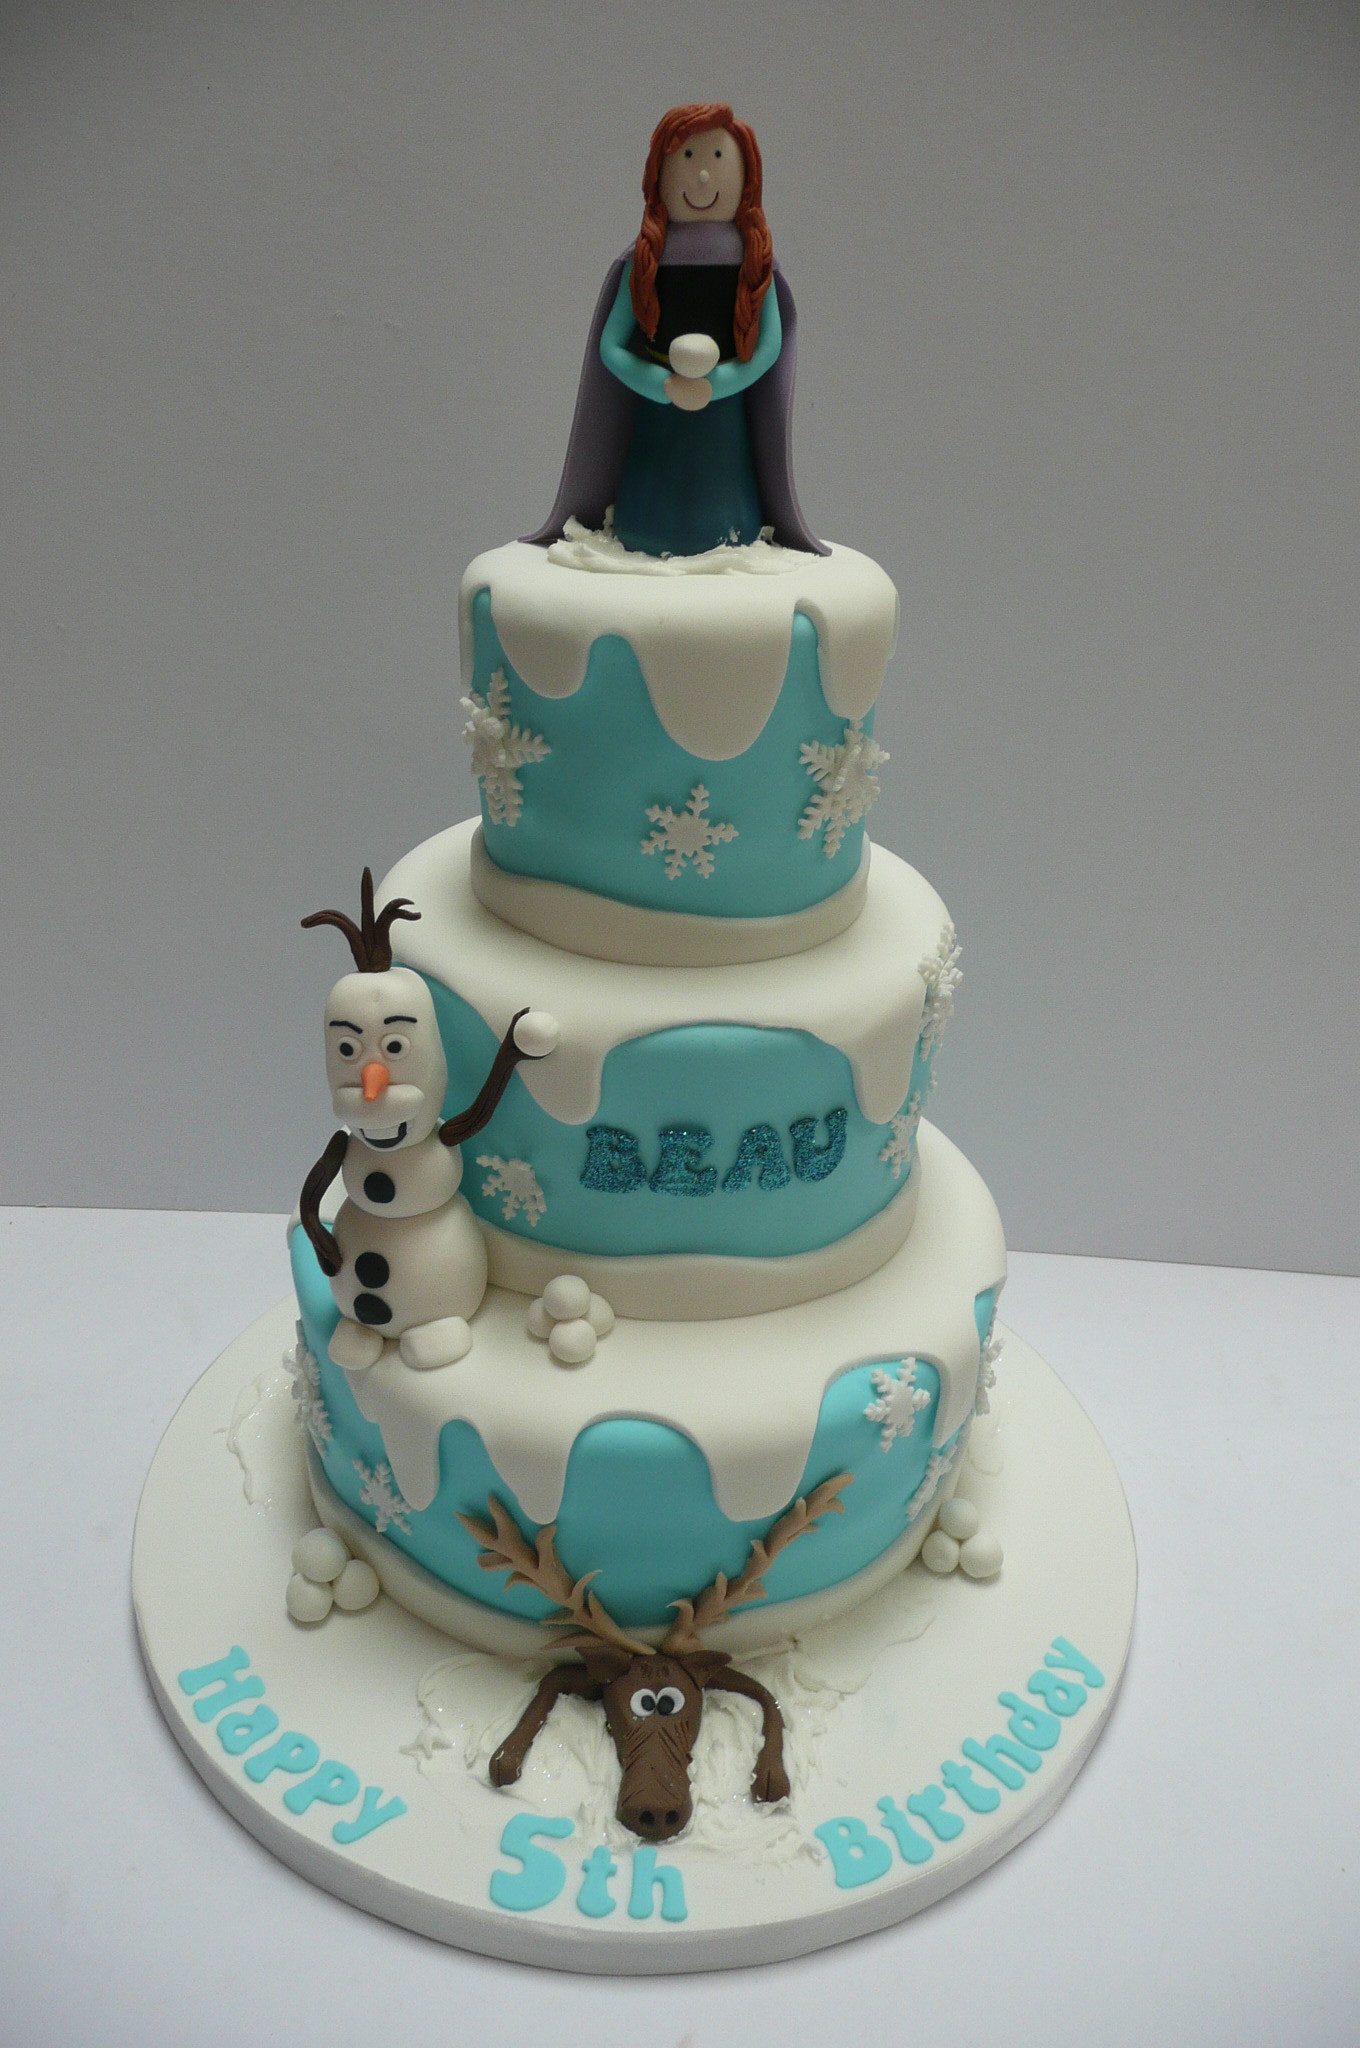 Best ideas about 3 Tier Birthday Cake . Save or Pin Birthday cakes Now.